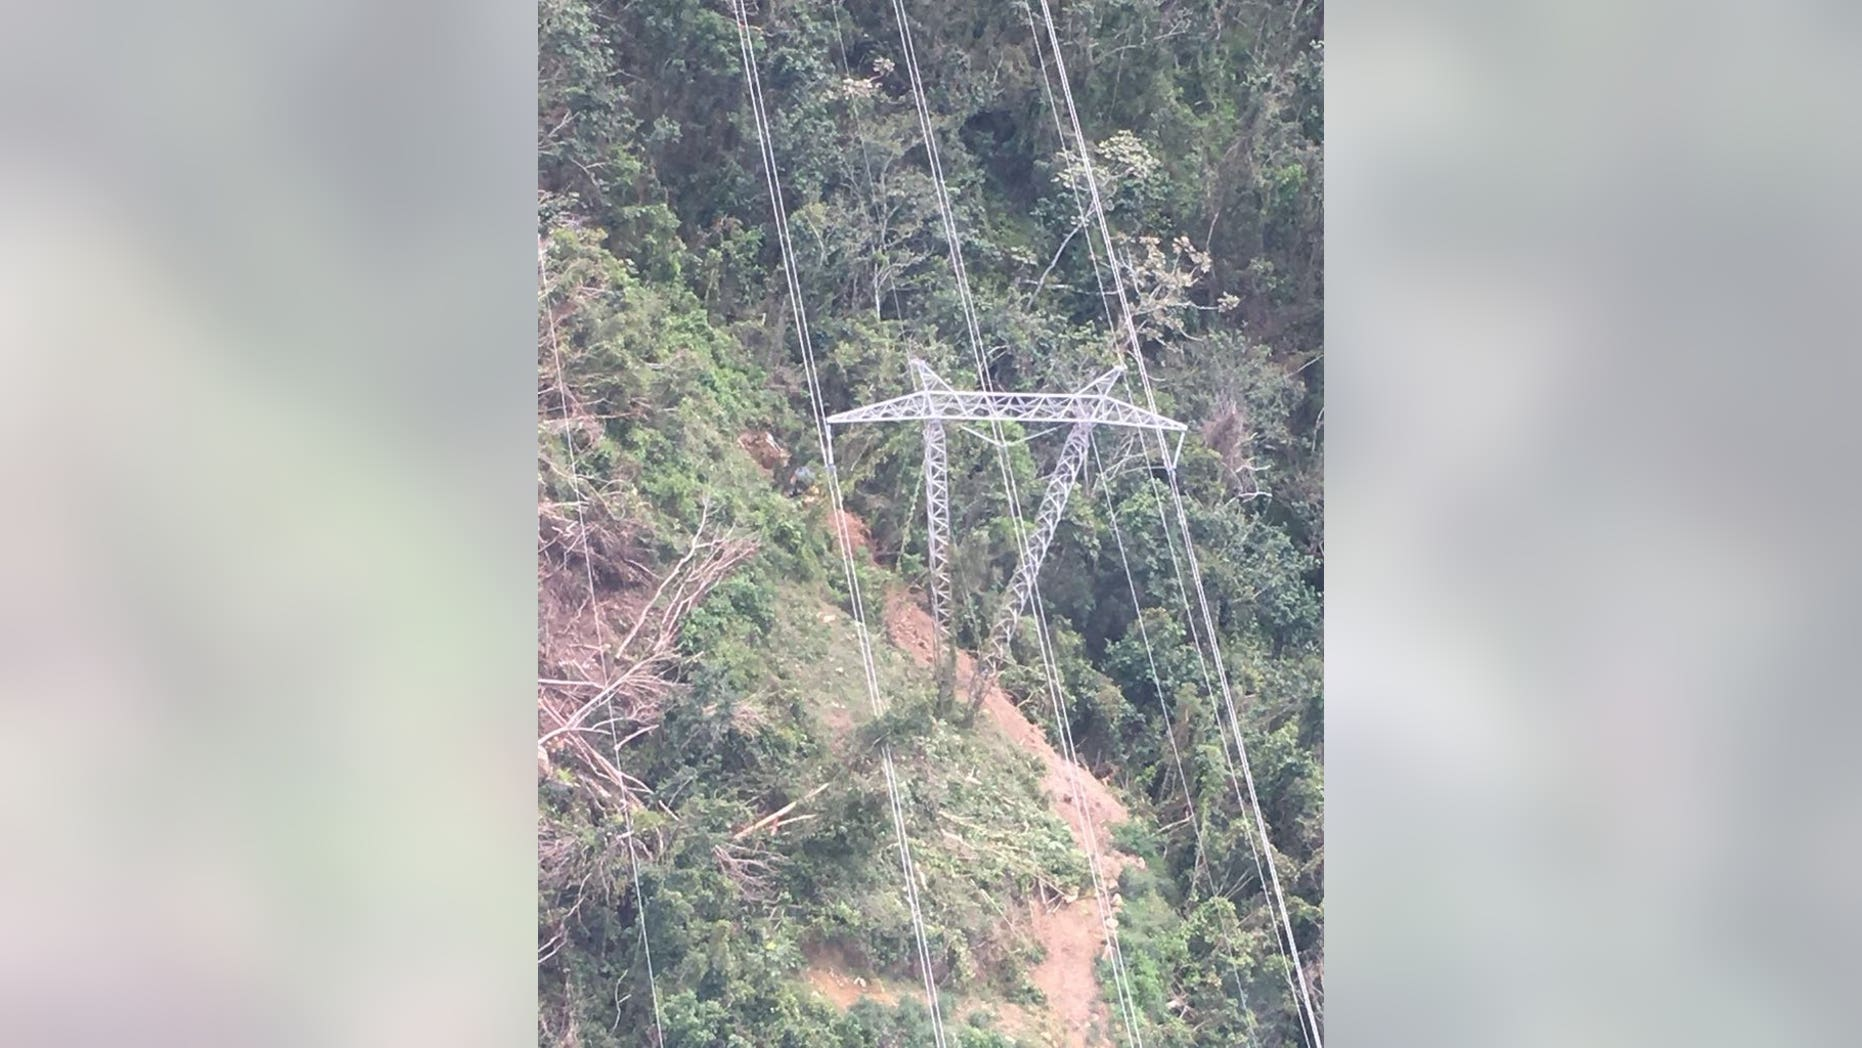 A downed tree caused the widespread power outage in Puerto Rico on Thursday, officials said.